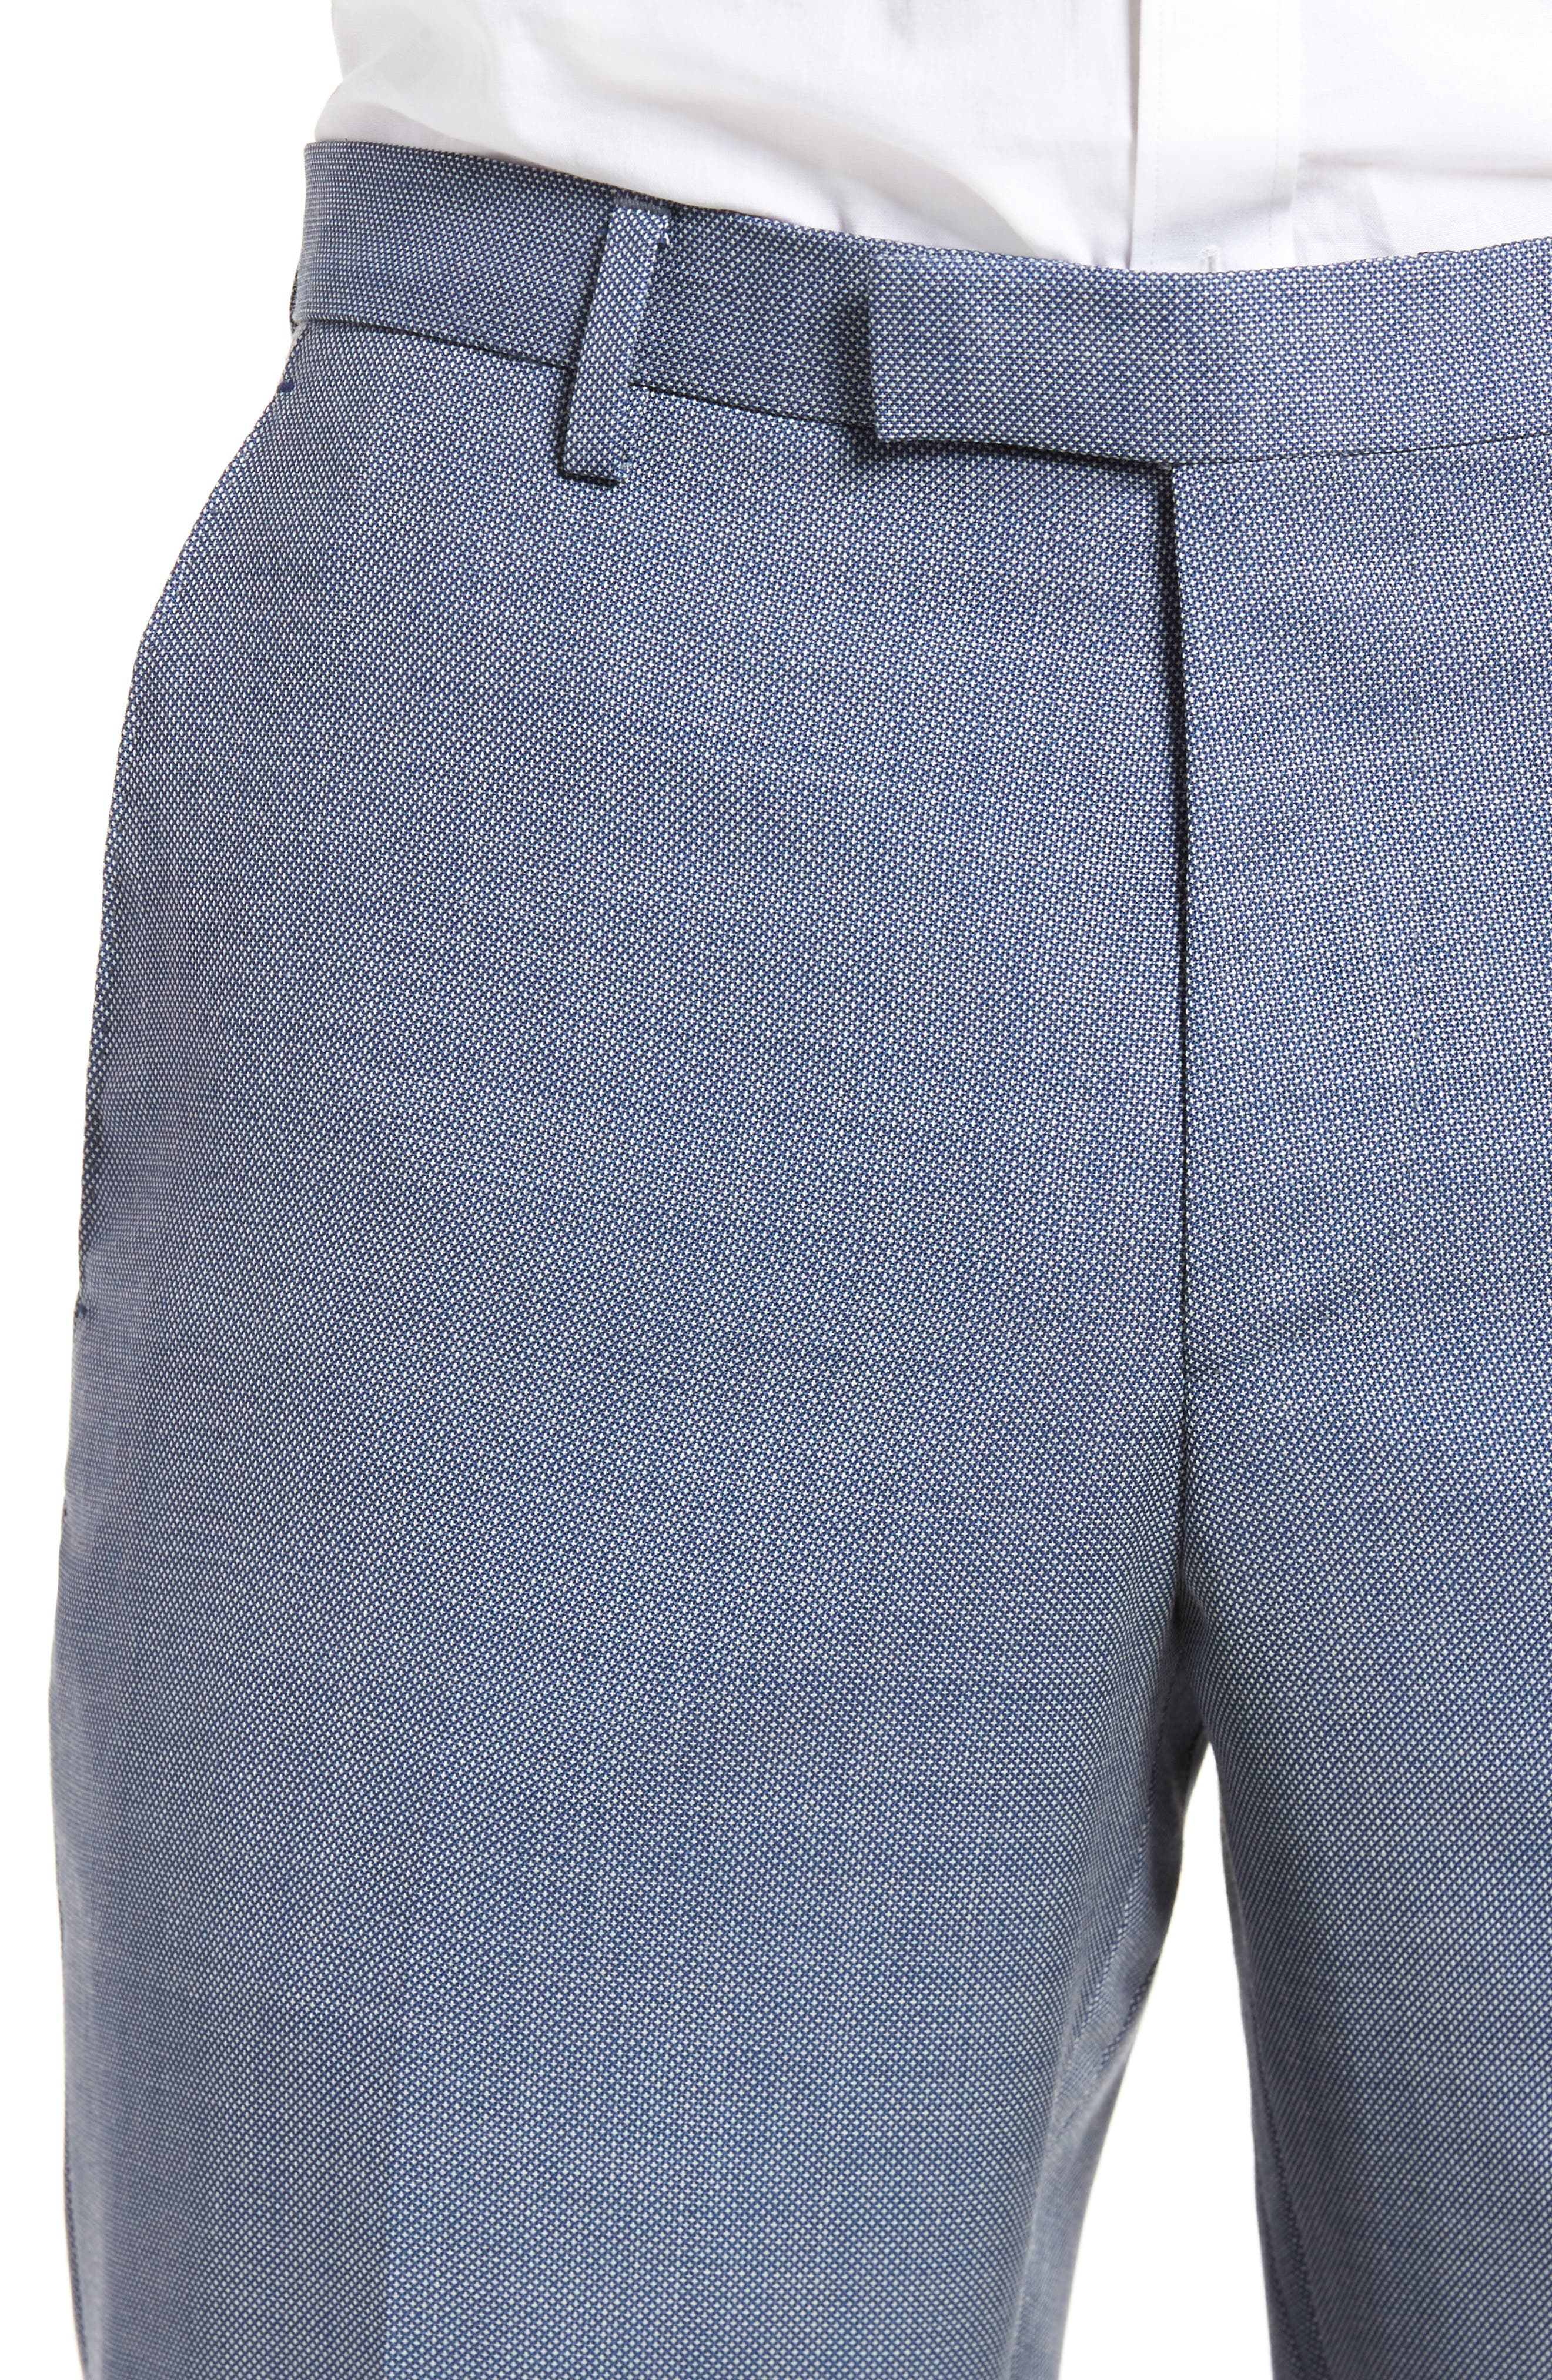 Leenon Flat Front Regular Fit Solid Wool Trousers,                             Alternate thumbnail 5, color,                             Light/ Pastel Blue